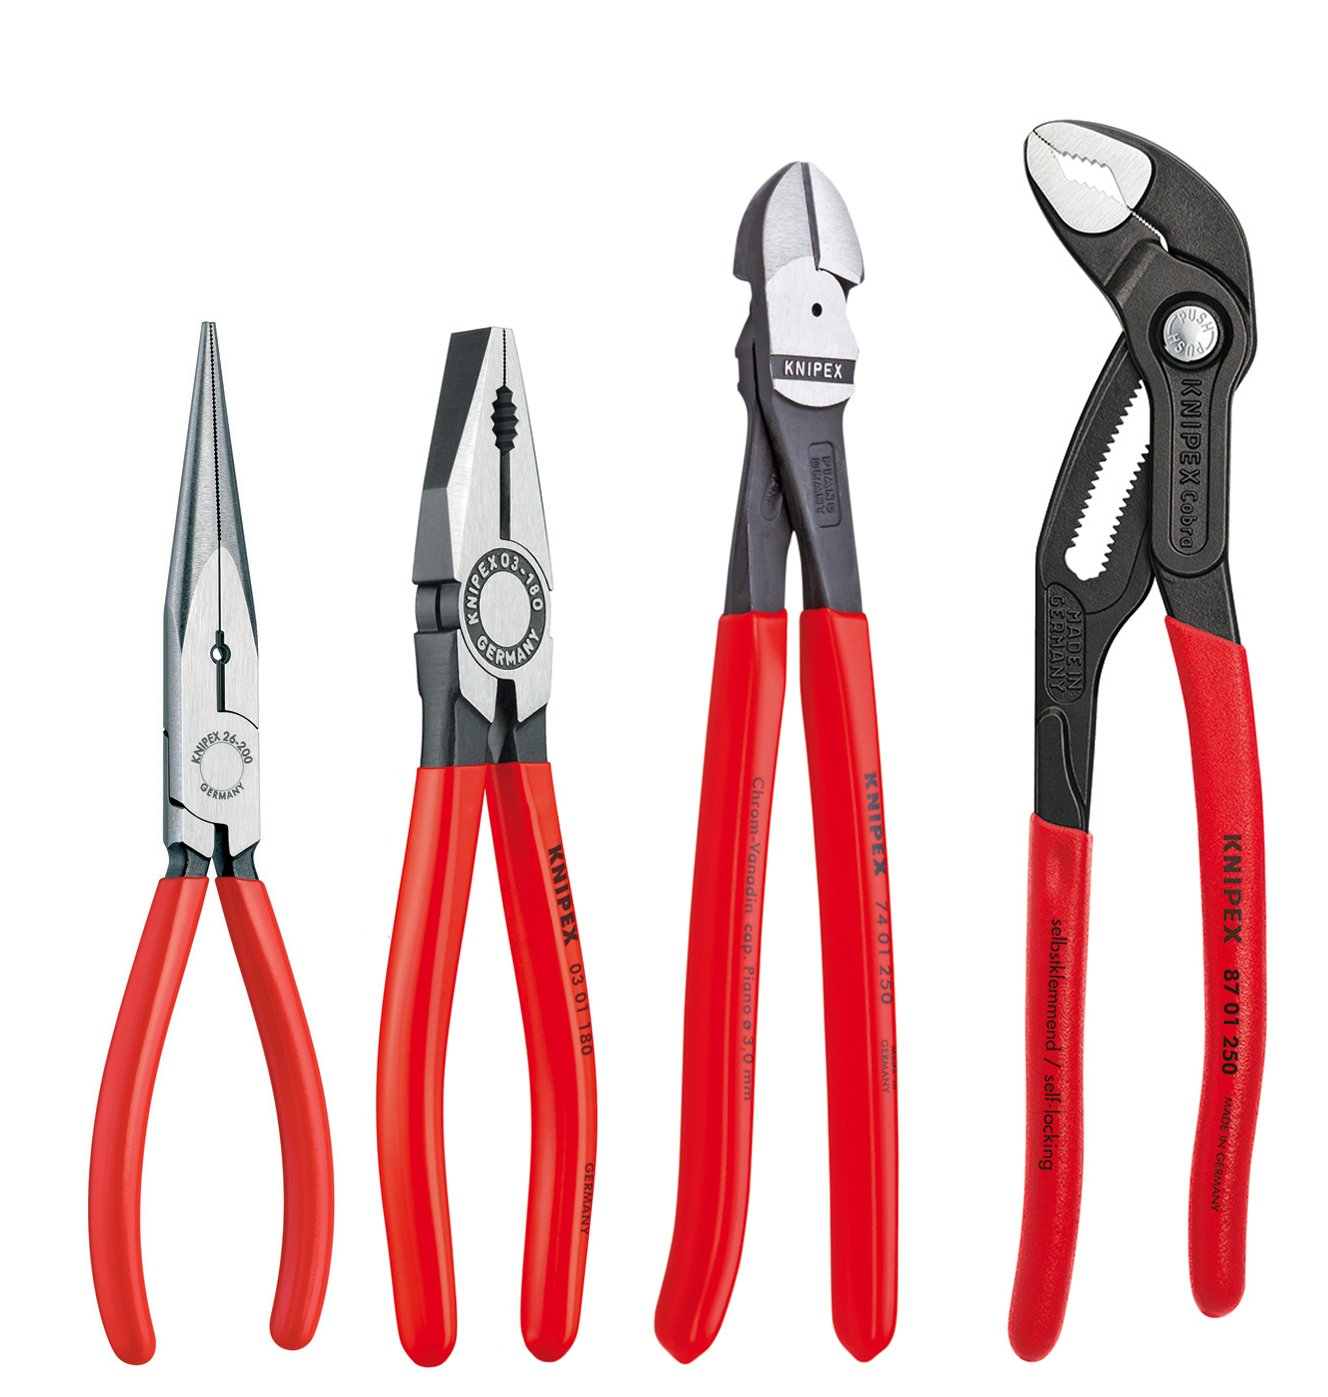 Knipex Tools 9K 00 80 94 US Cobra Combination Cutter and Needle Nose Pliers Set (4 Piece) by KNIPEX Tools